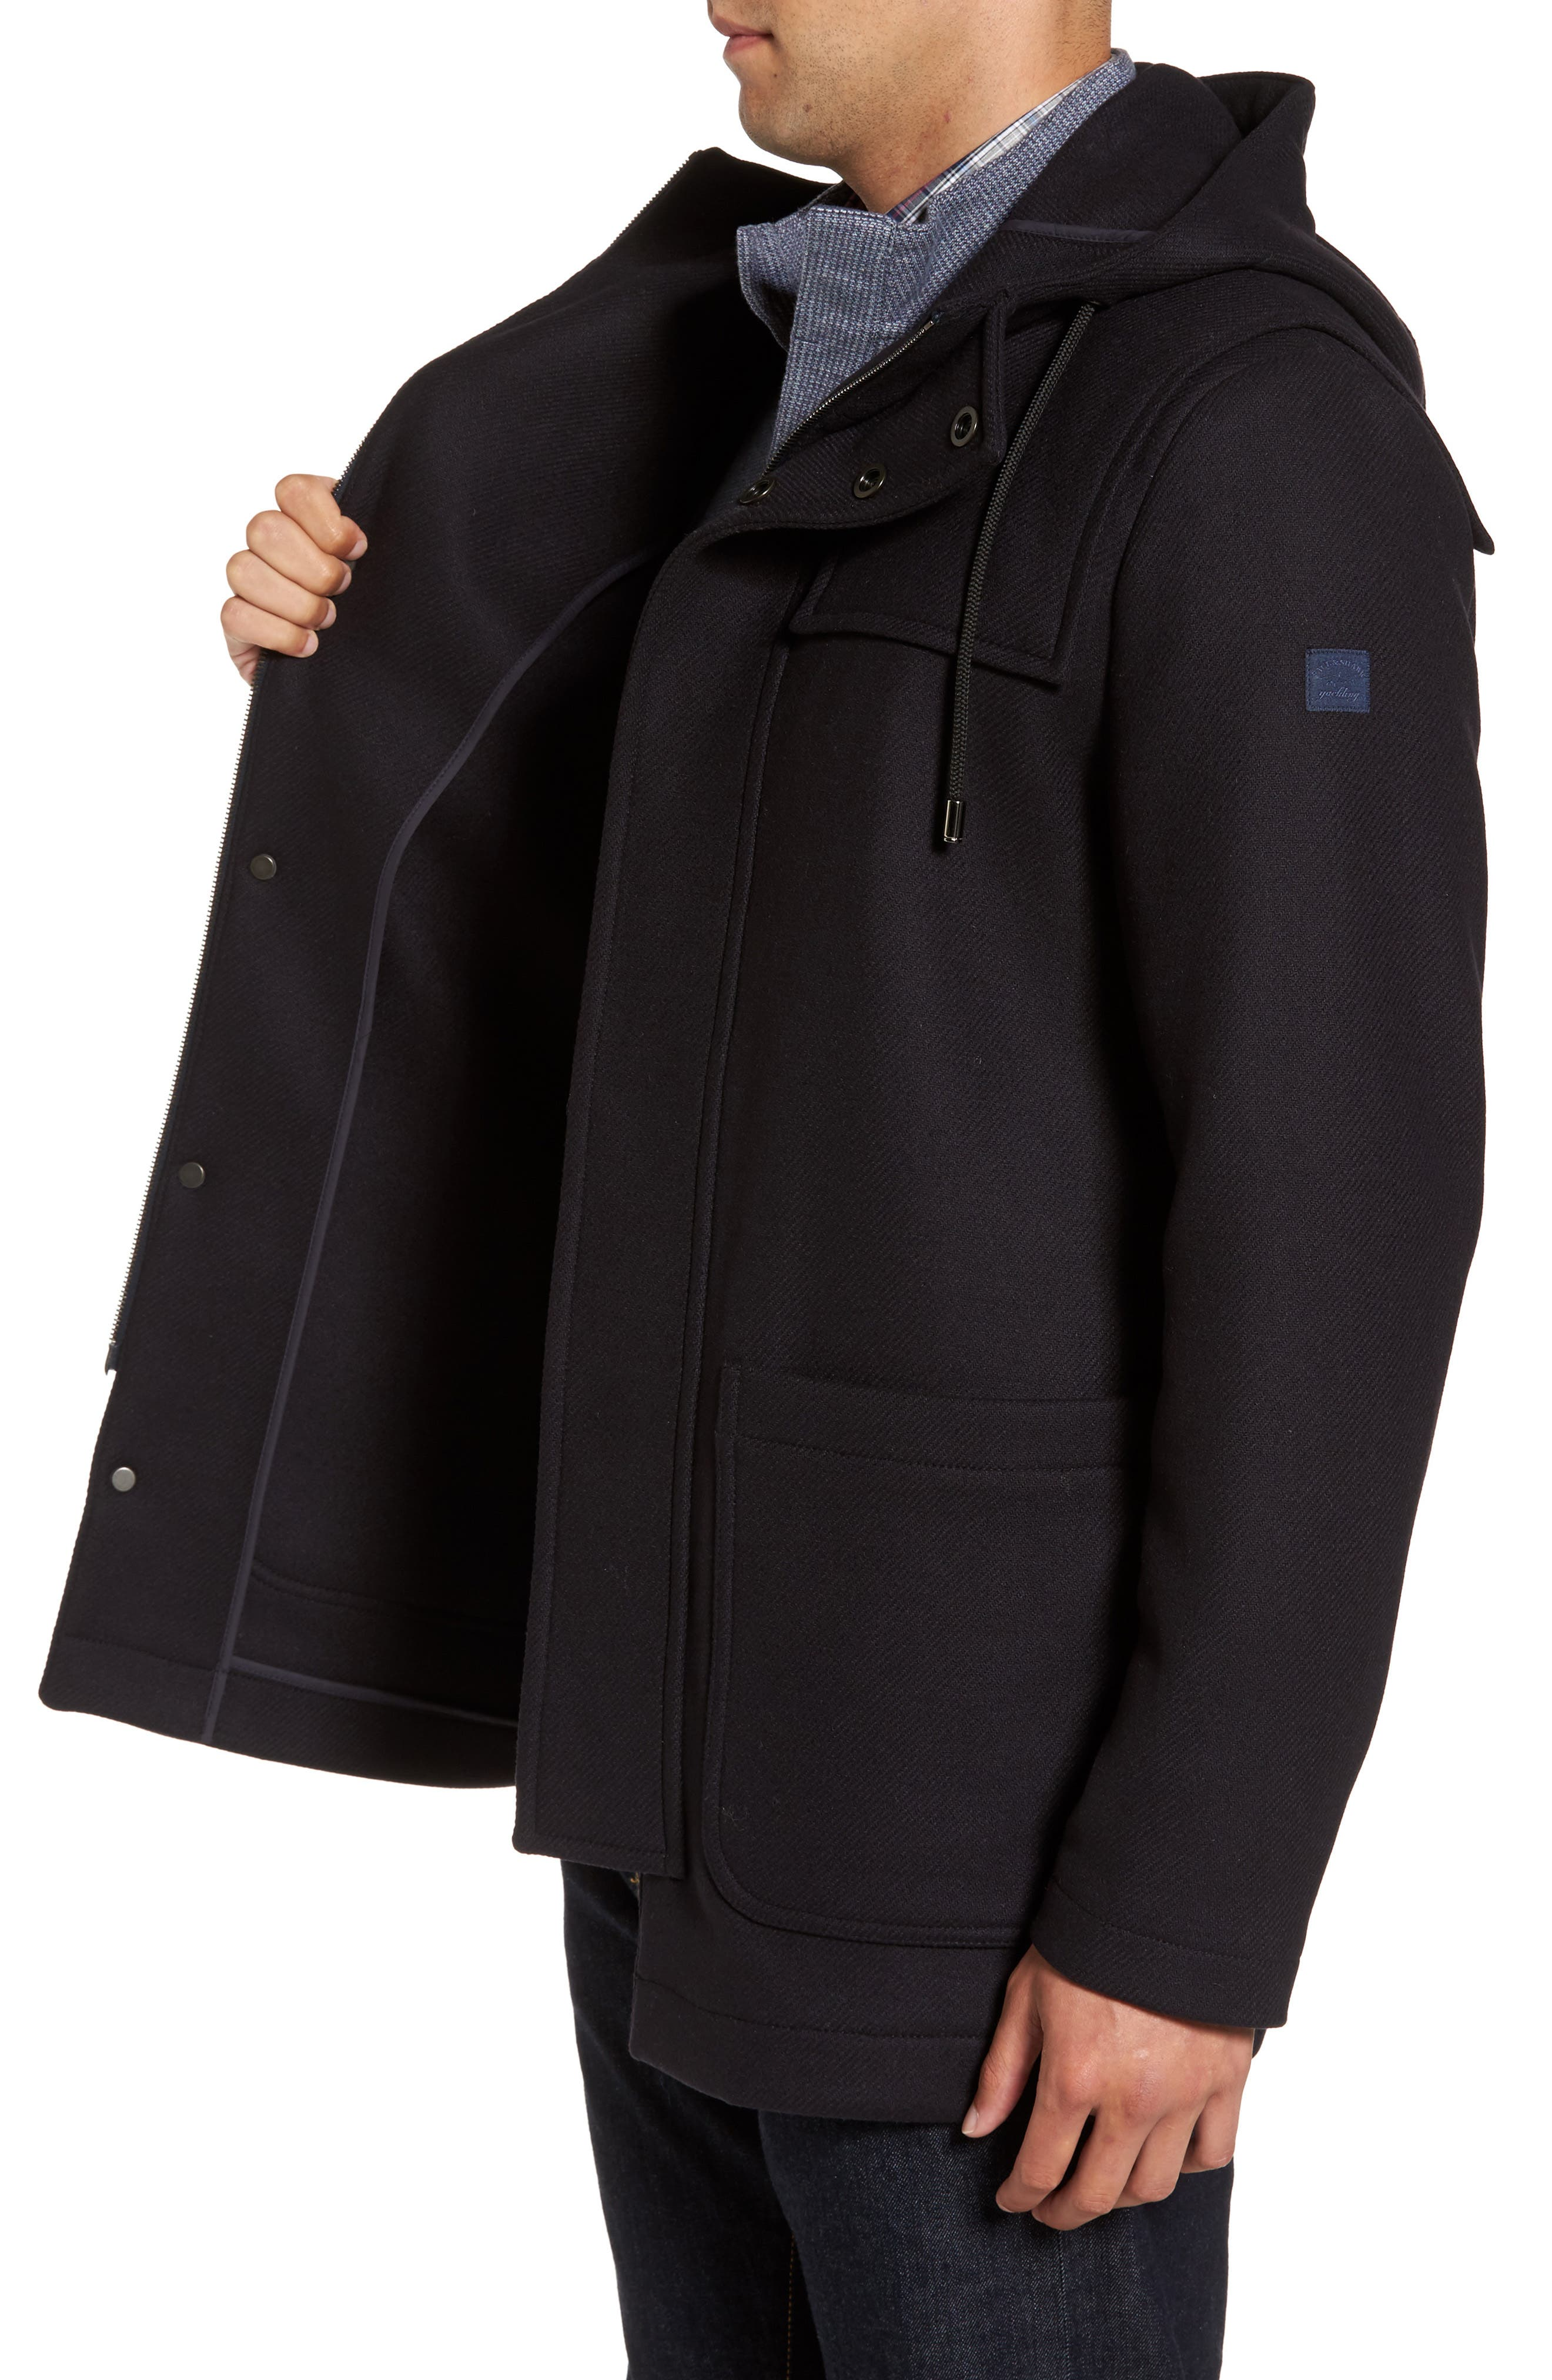 Paul&Shark Wool Blend Duffle Coat,                             Alternate thumbnail 3, color,                             400